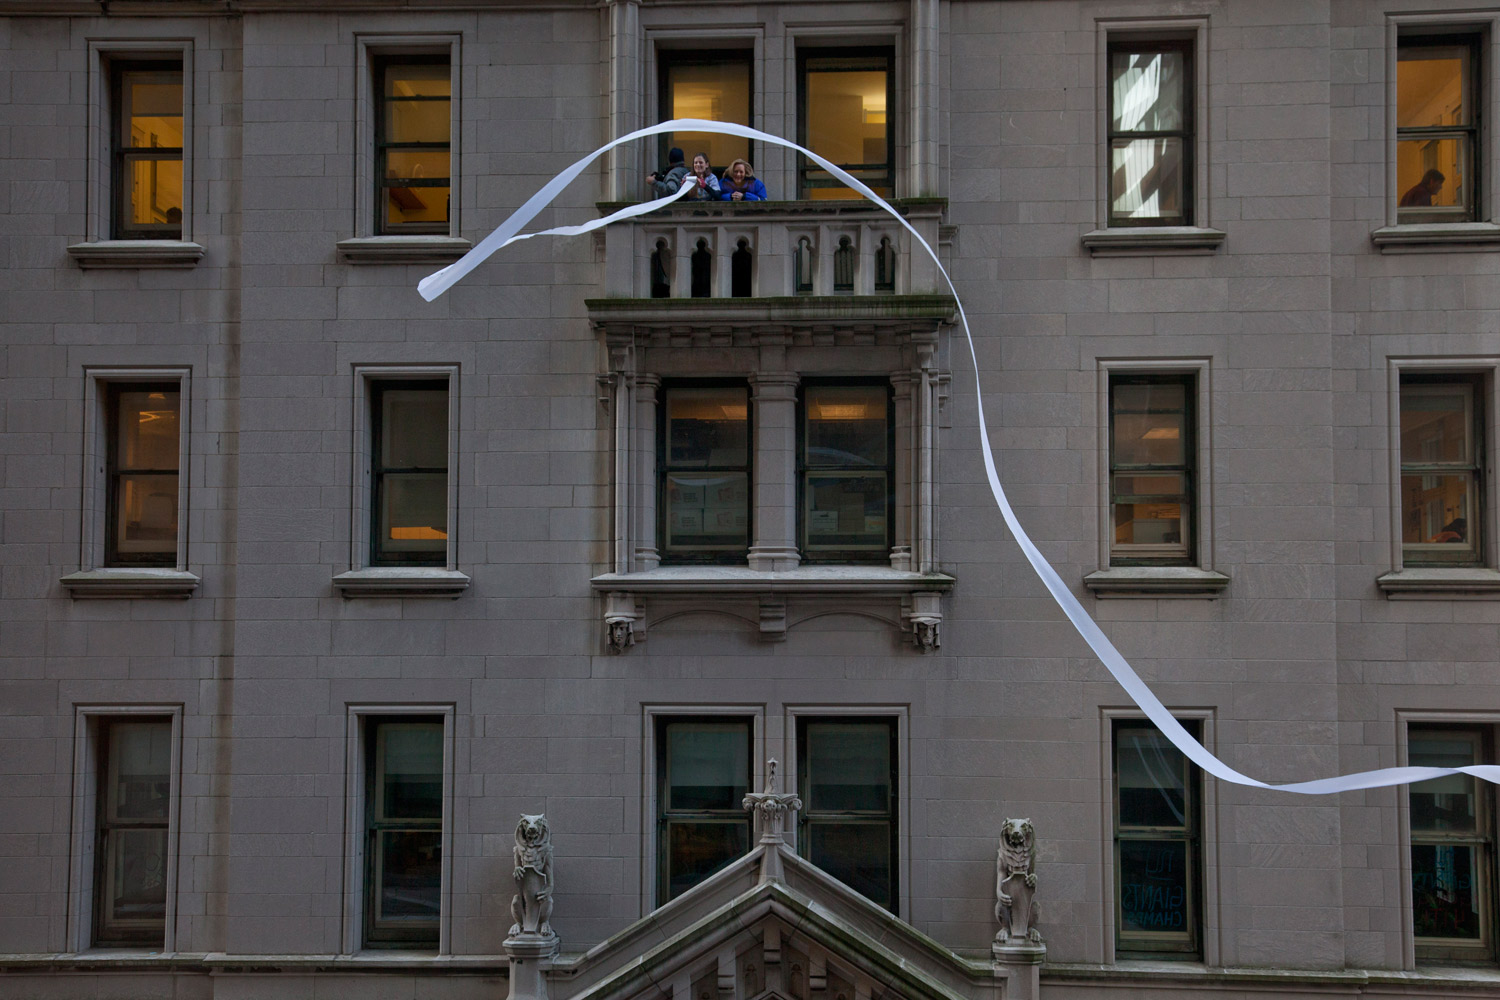 February 7, 2012. Spectators gather on a balcony to watch the New York Giants victory parade in New York. The Giants returned from their Super Bowl win to a ticker-tape parade in the Canyon of Heroes on Broadway.